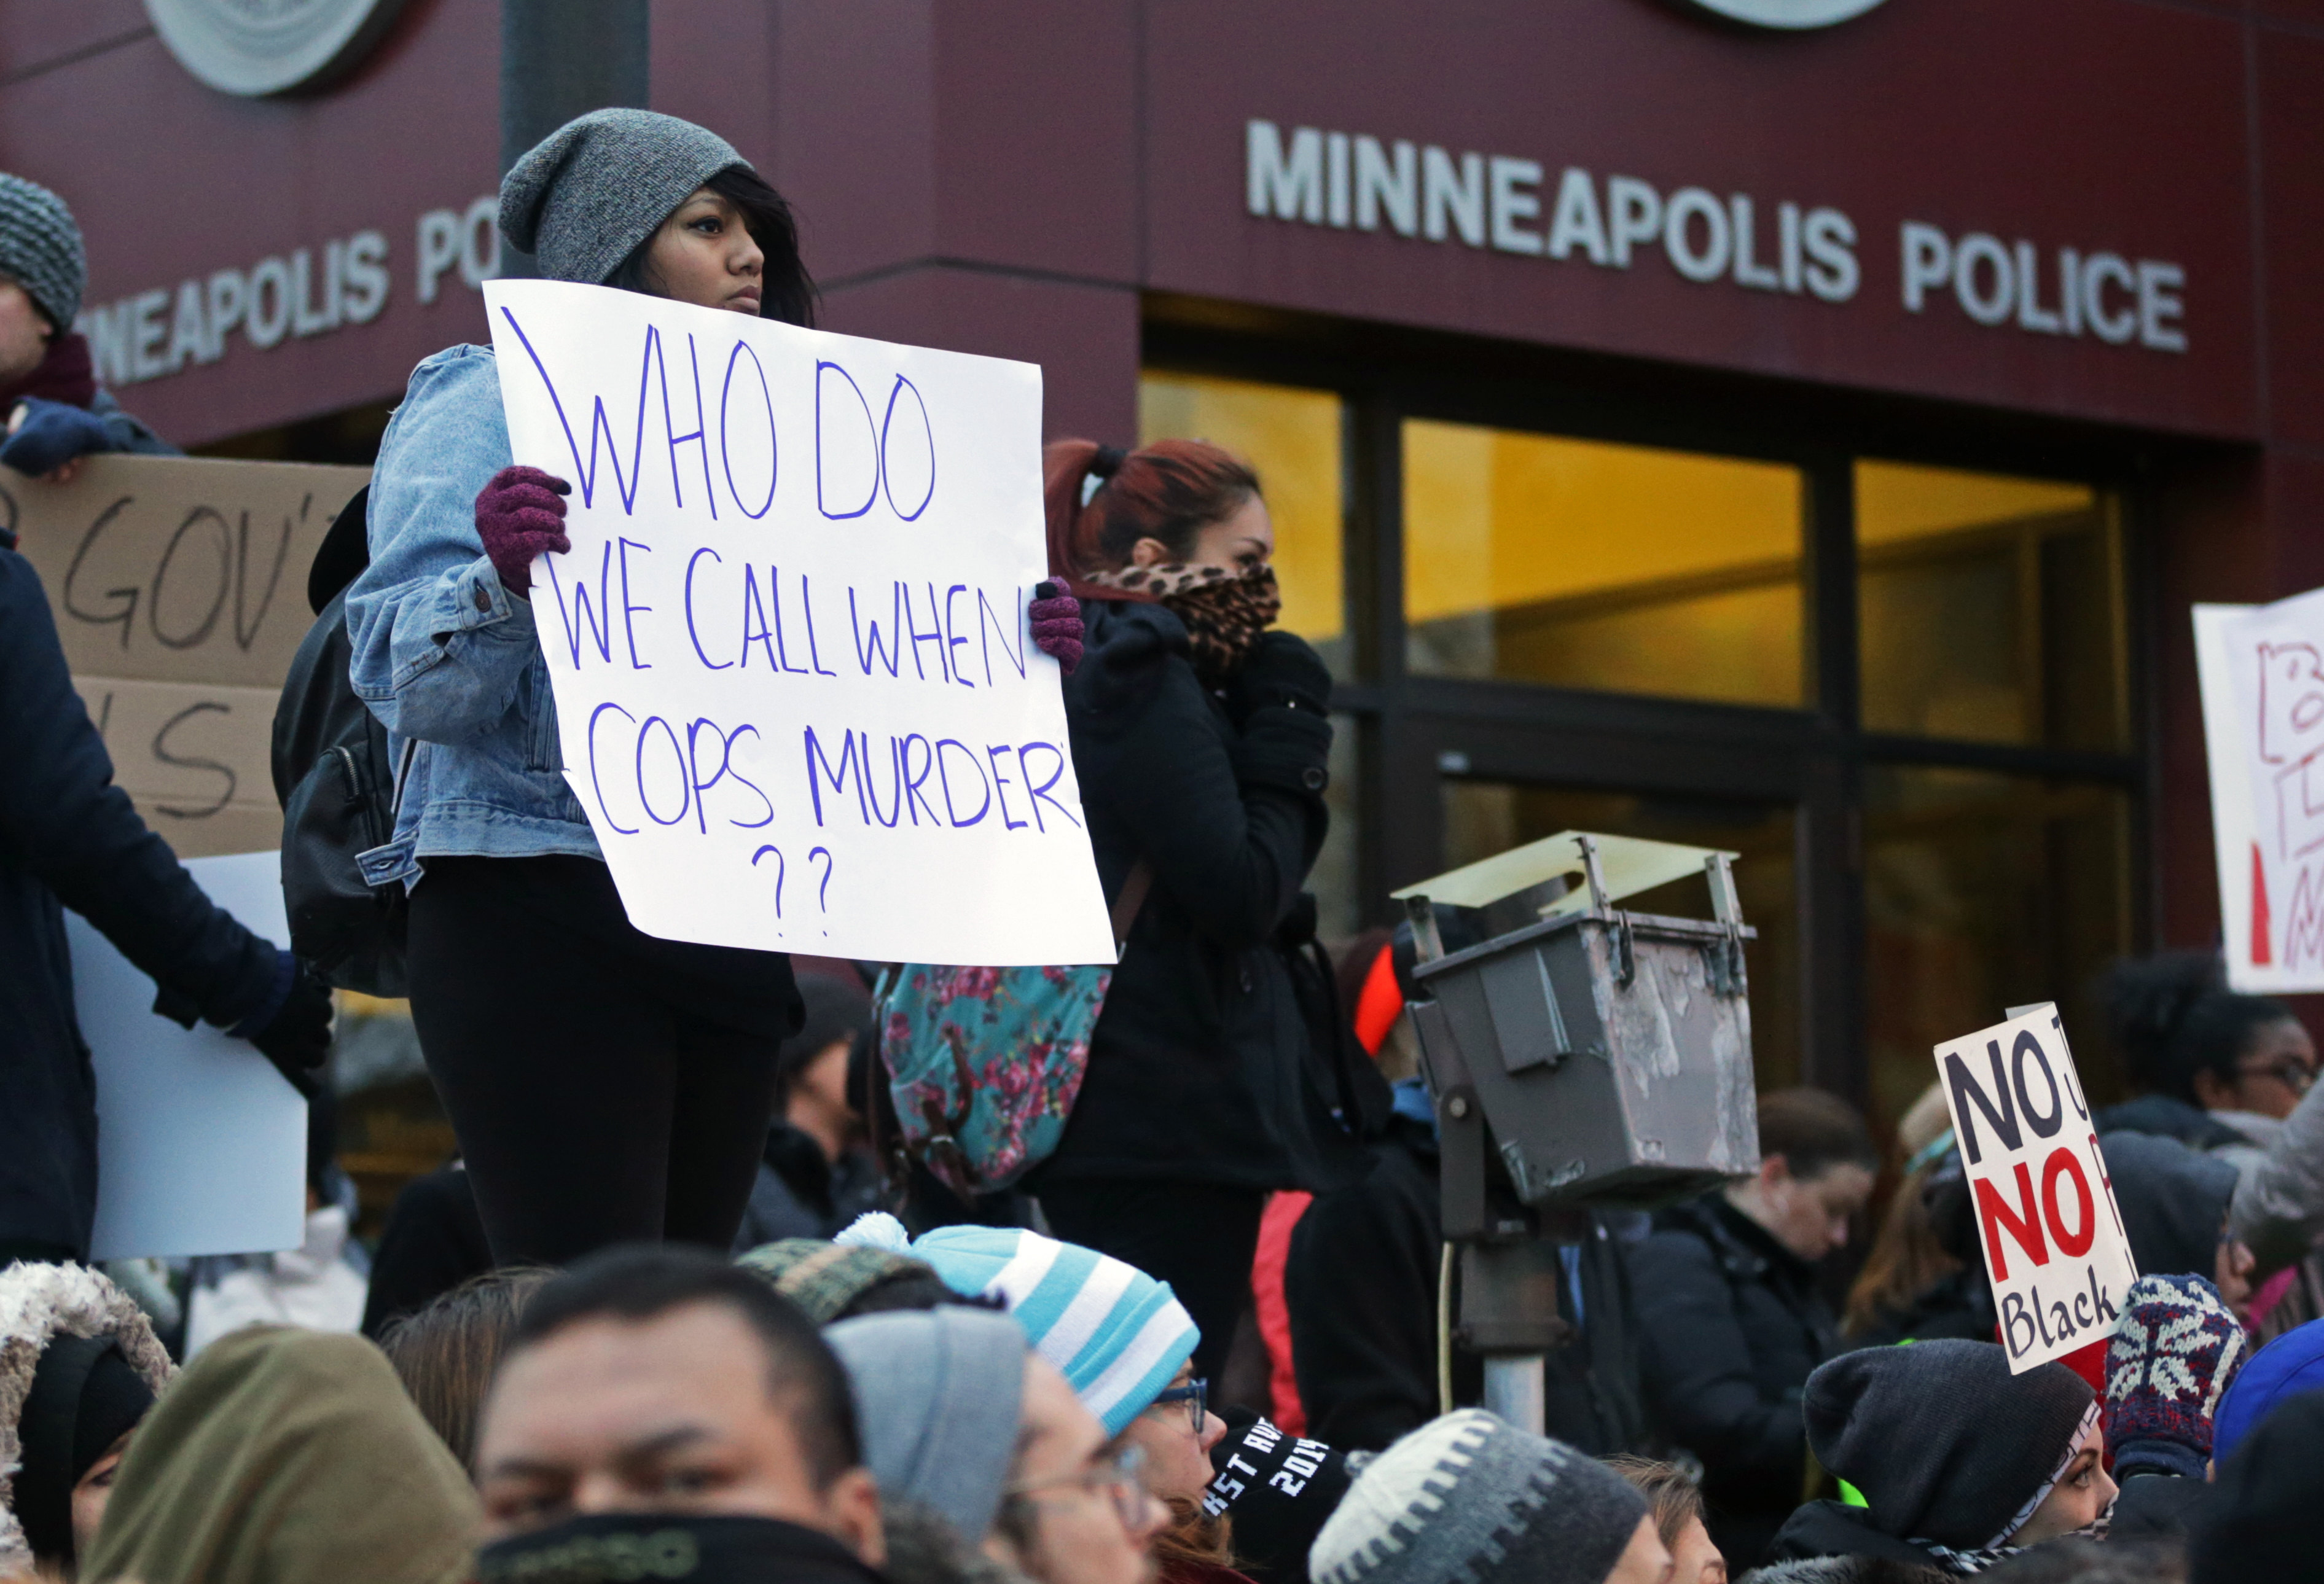 Demonstrators rally outside the Minneapolis Police Department's Third Precinct to protest police brutality, on Nov. 25, 2014, in Minneapolis.